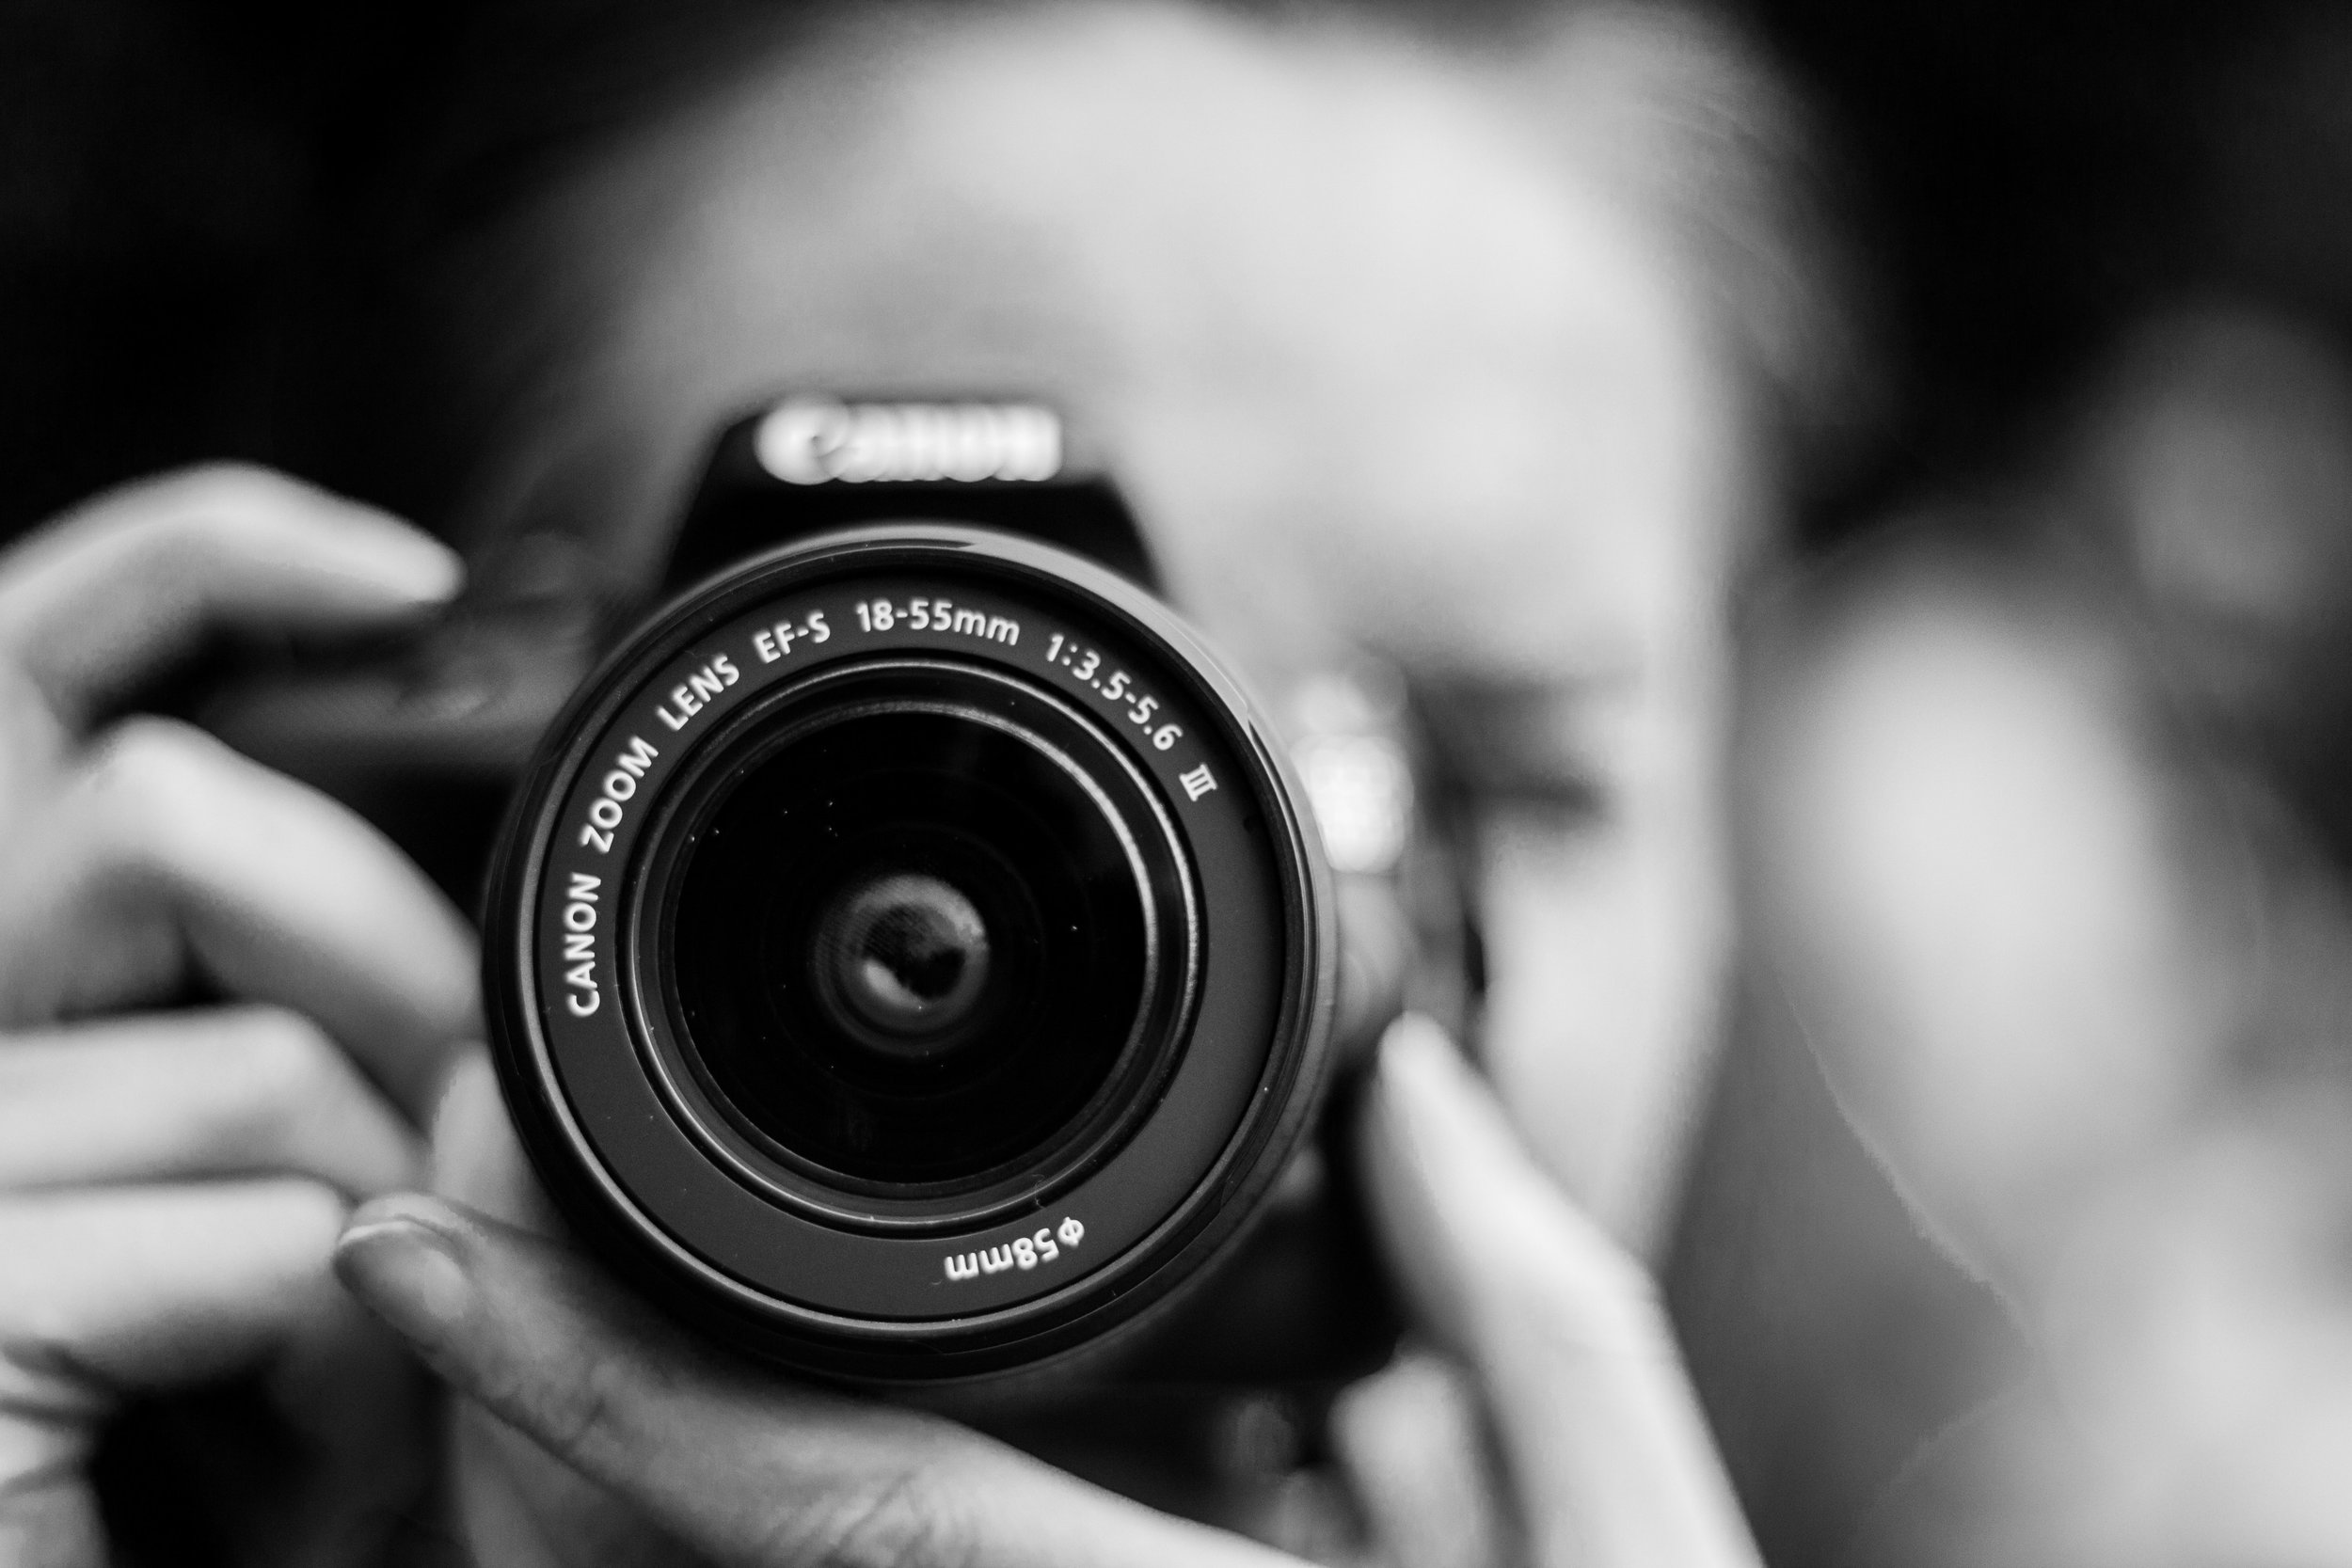 Photography for Beginners. If you're new to photography and want to learn how to use your DSLR, help is at hand! Get in touch for details, classes in the Crewe and Nantwich area of Cheshire.